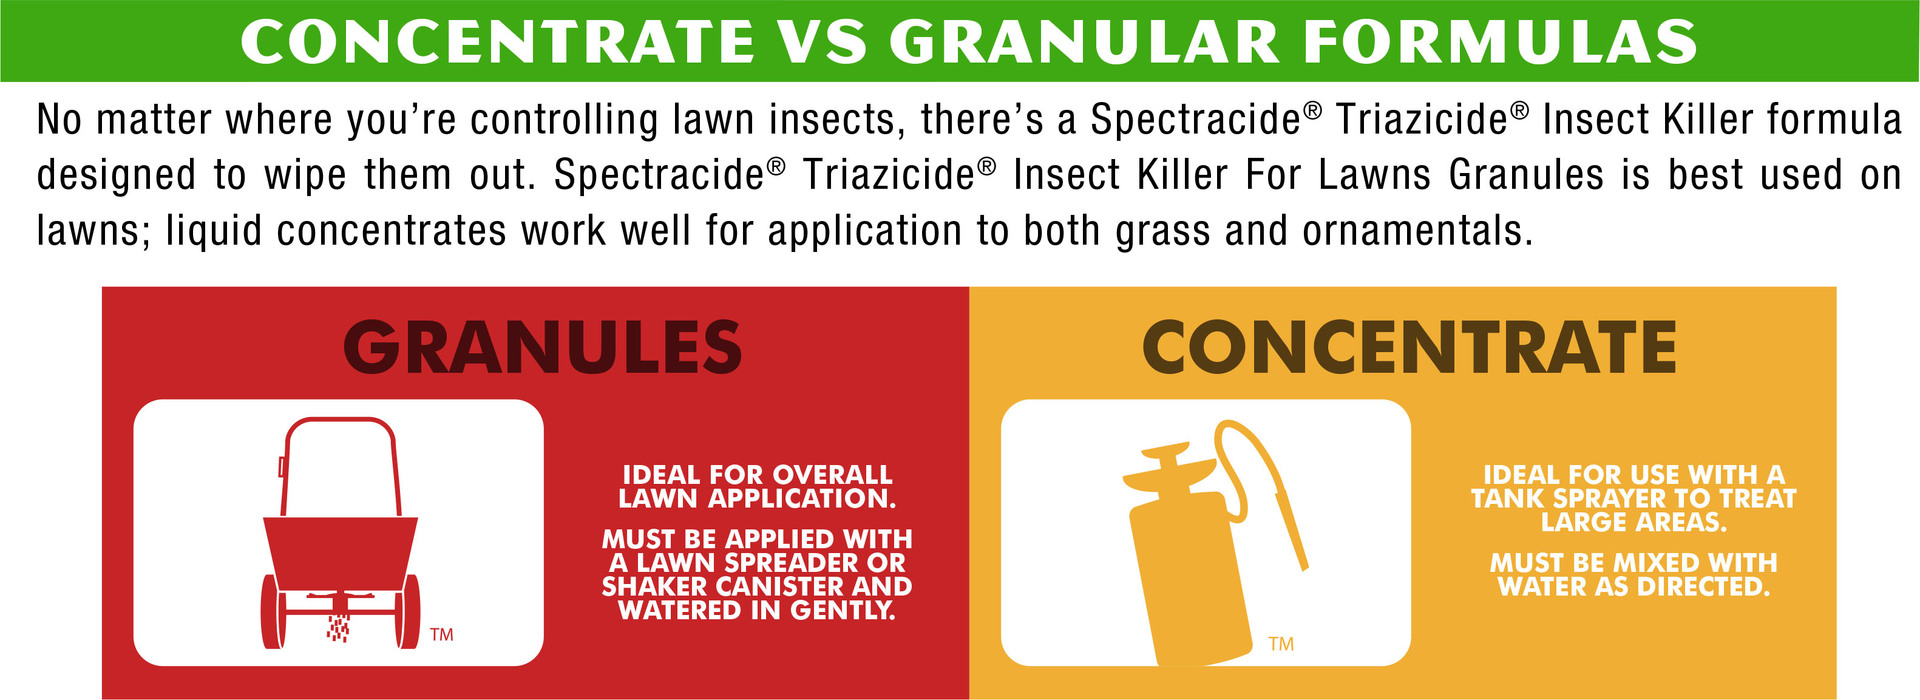 Spectracide Triazicide For Lawns Granules 20-lb Insect